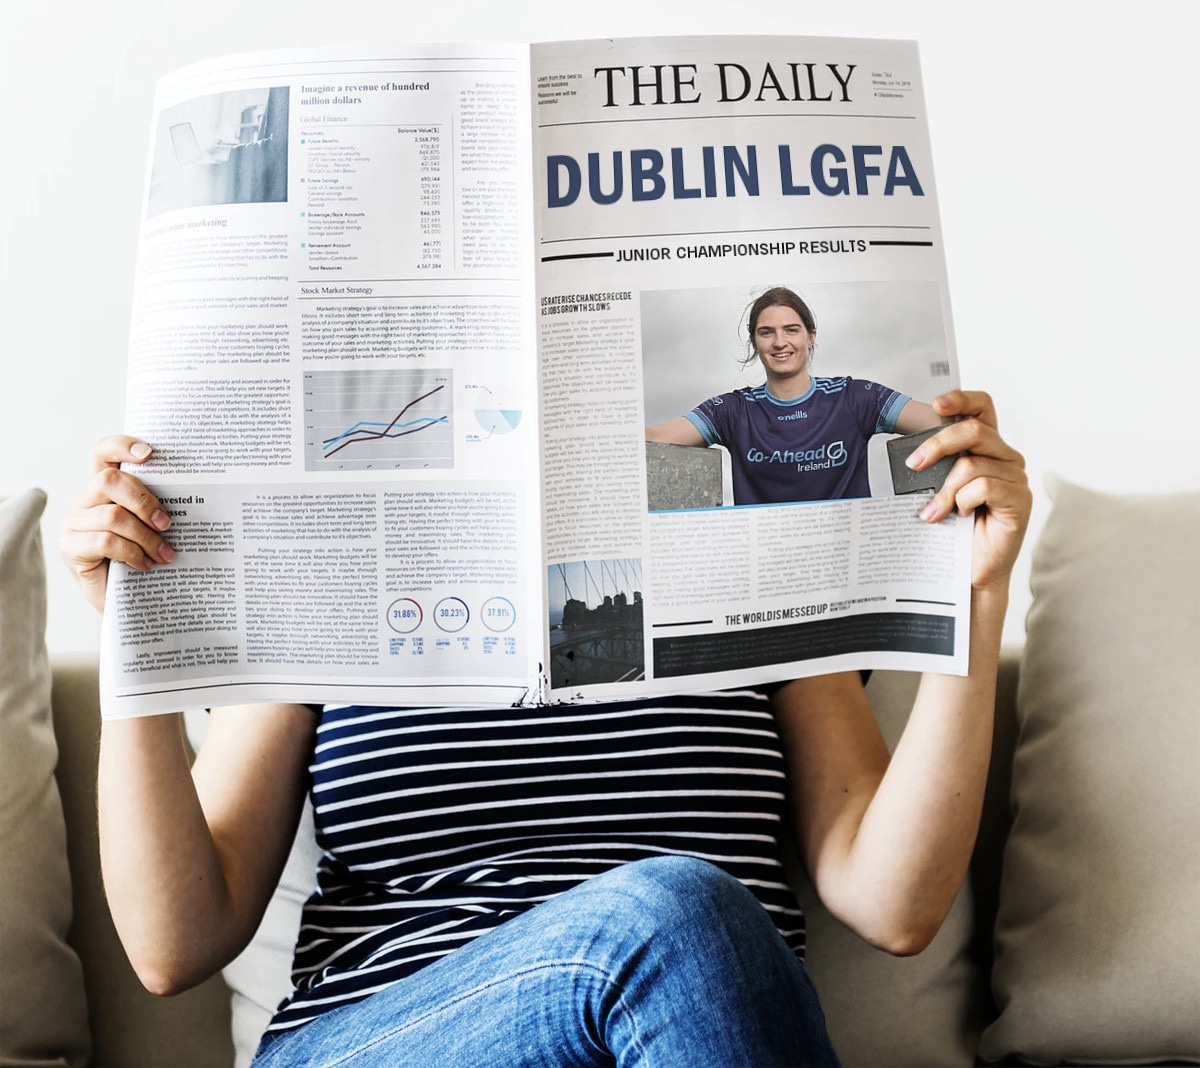 A person hold a newspaper with the title Dublin LGFA and subtitle Junior Championship and Adult League Results.